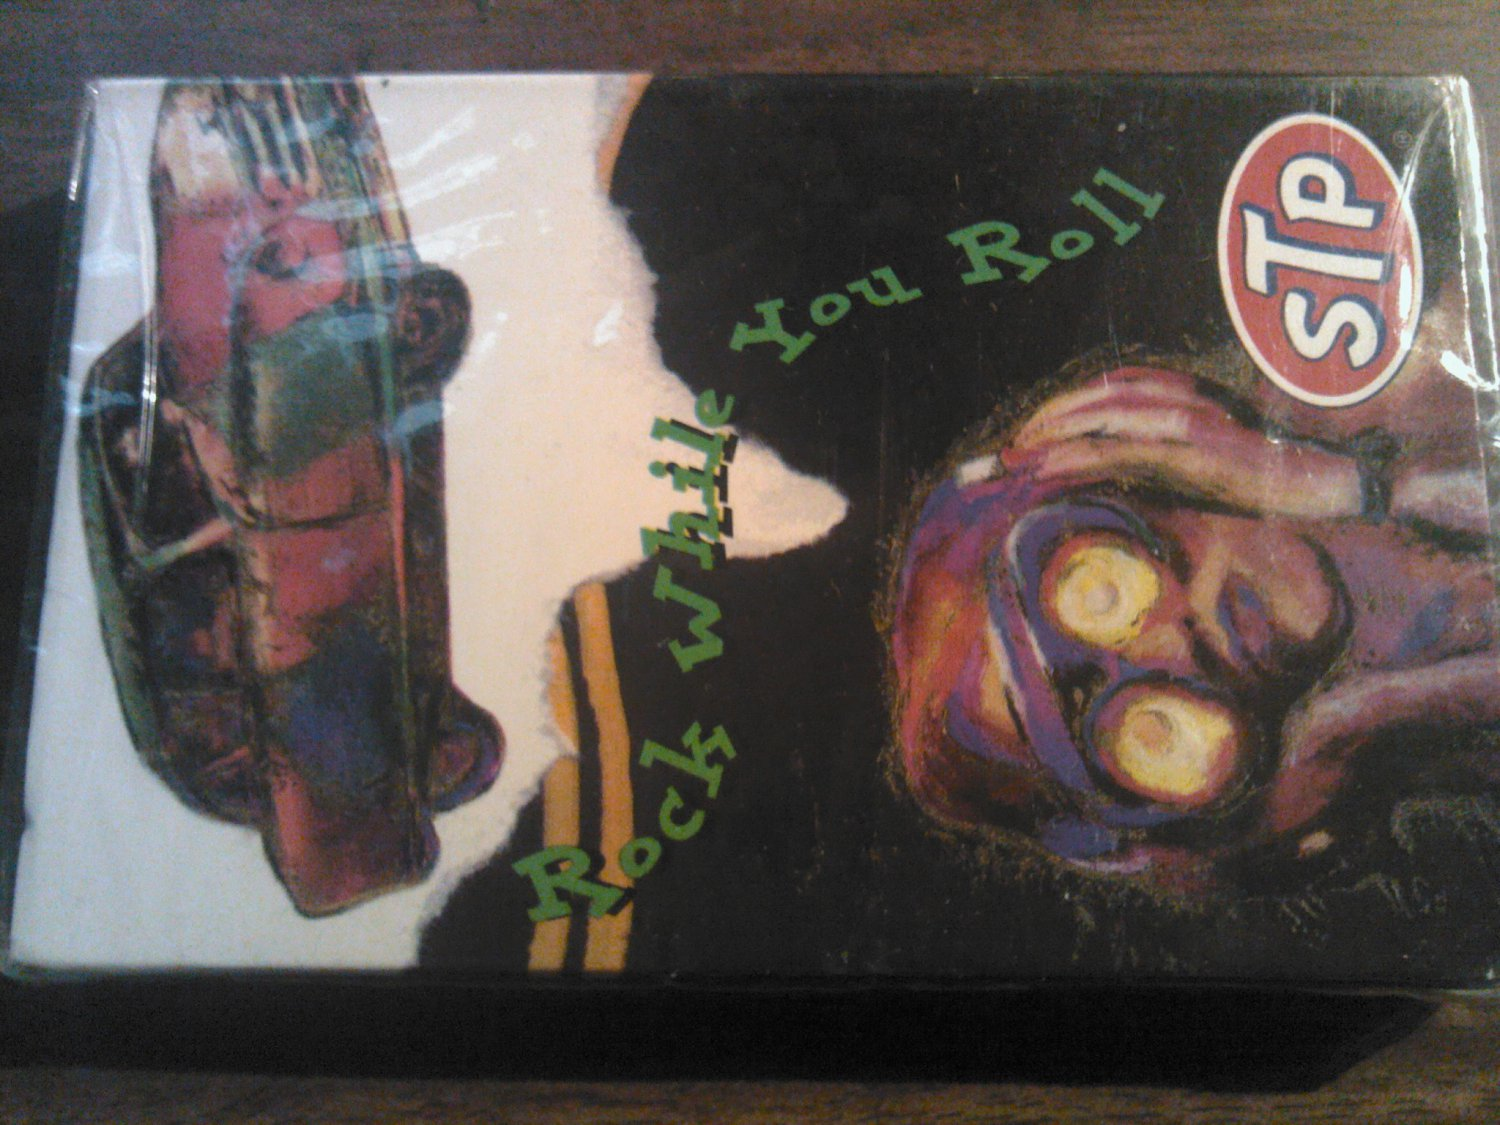 V/A cassette tape Matthew Sweet Allman Brothers Chris Whitley Ned's Atomic Dustbin SEALED PROMO